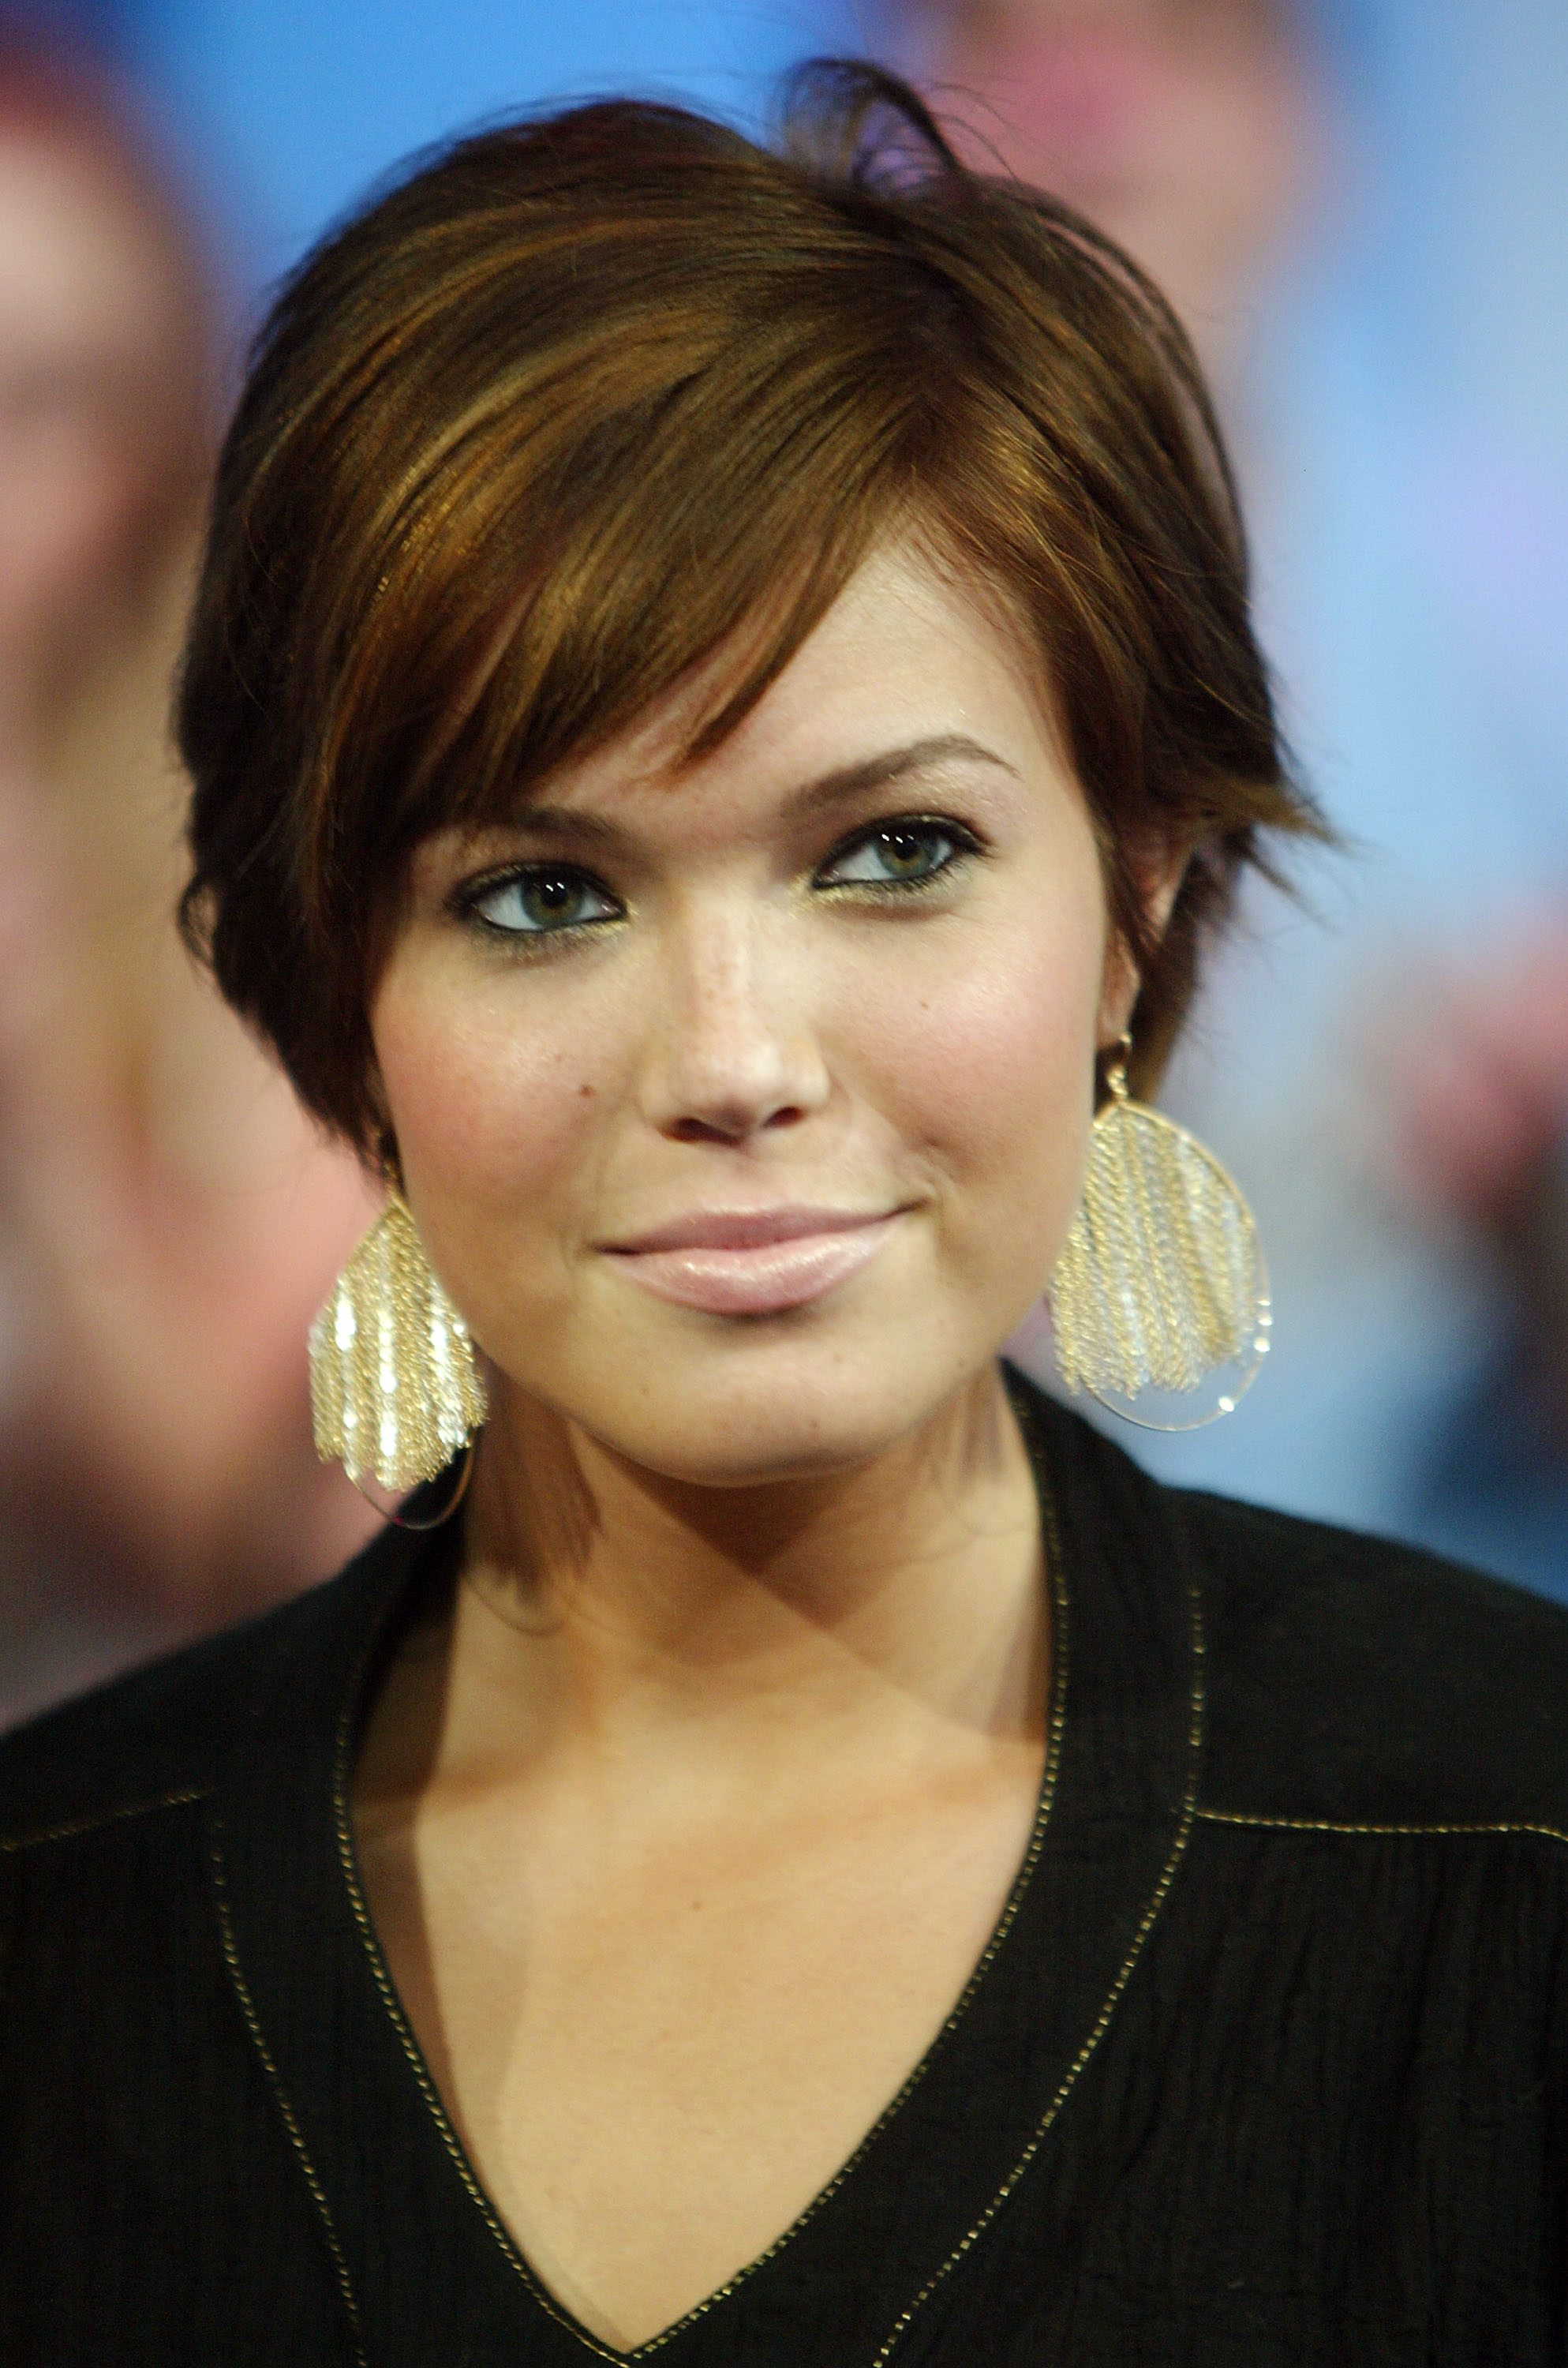 Best ideas about Short Haircuts For Round Faces And Thin Hair . Save or Pin StyleNoted Now.